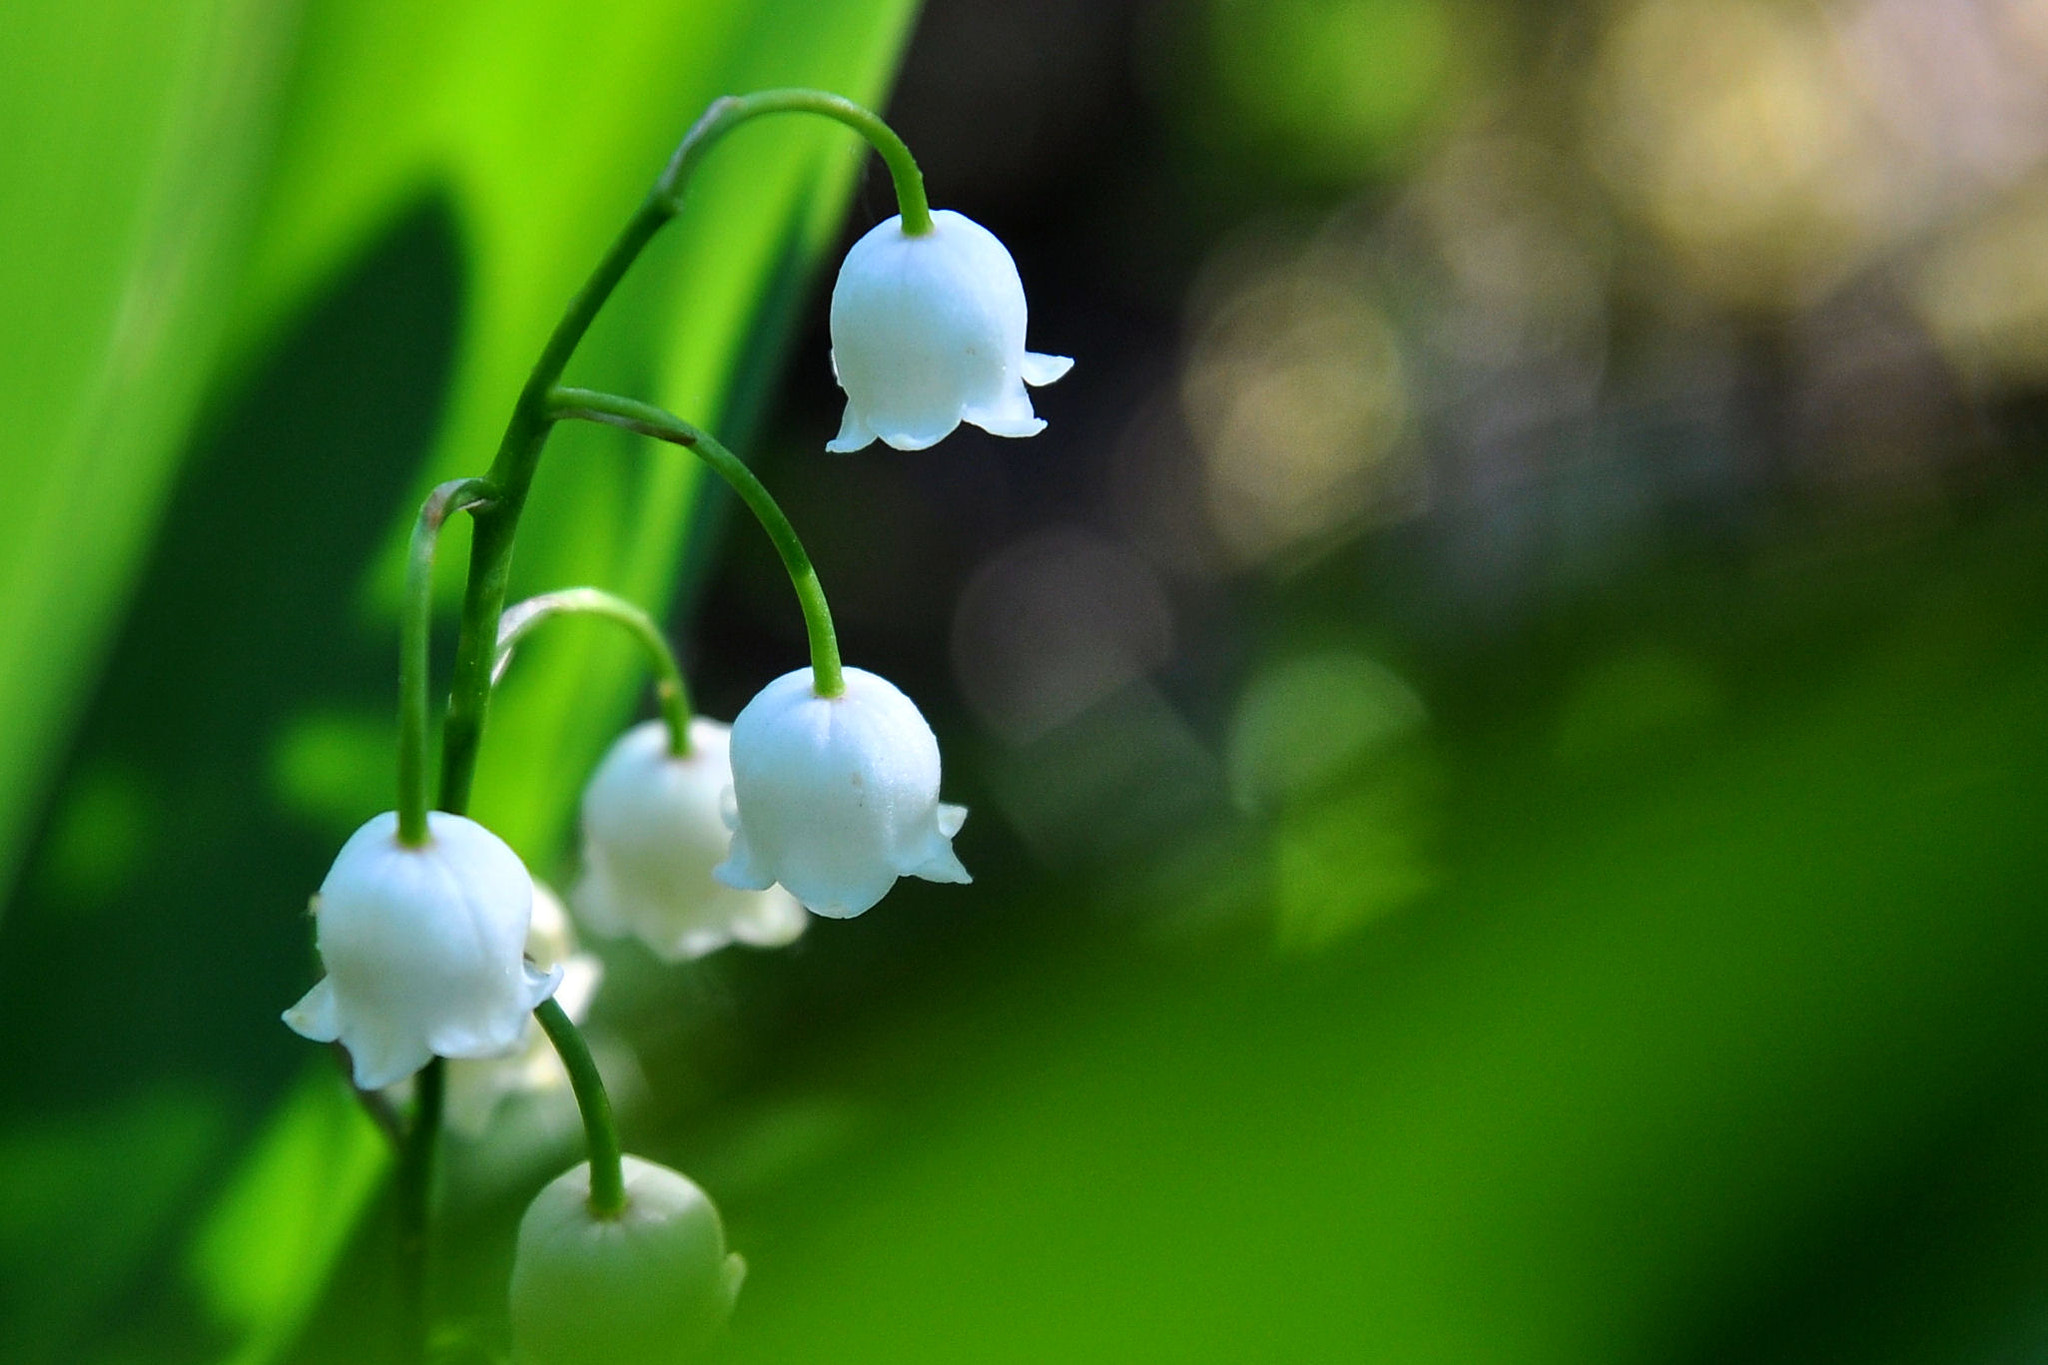 Photograph Lily of the valley by mbackman on 500px